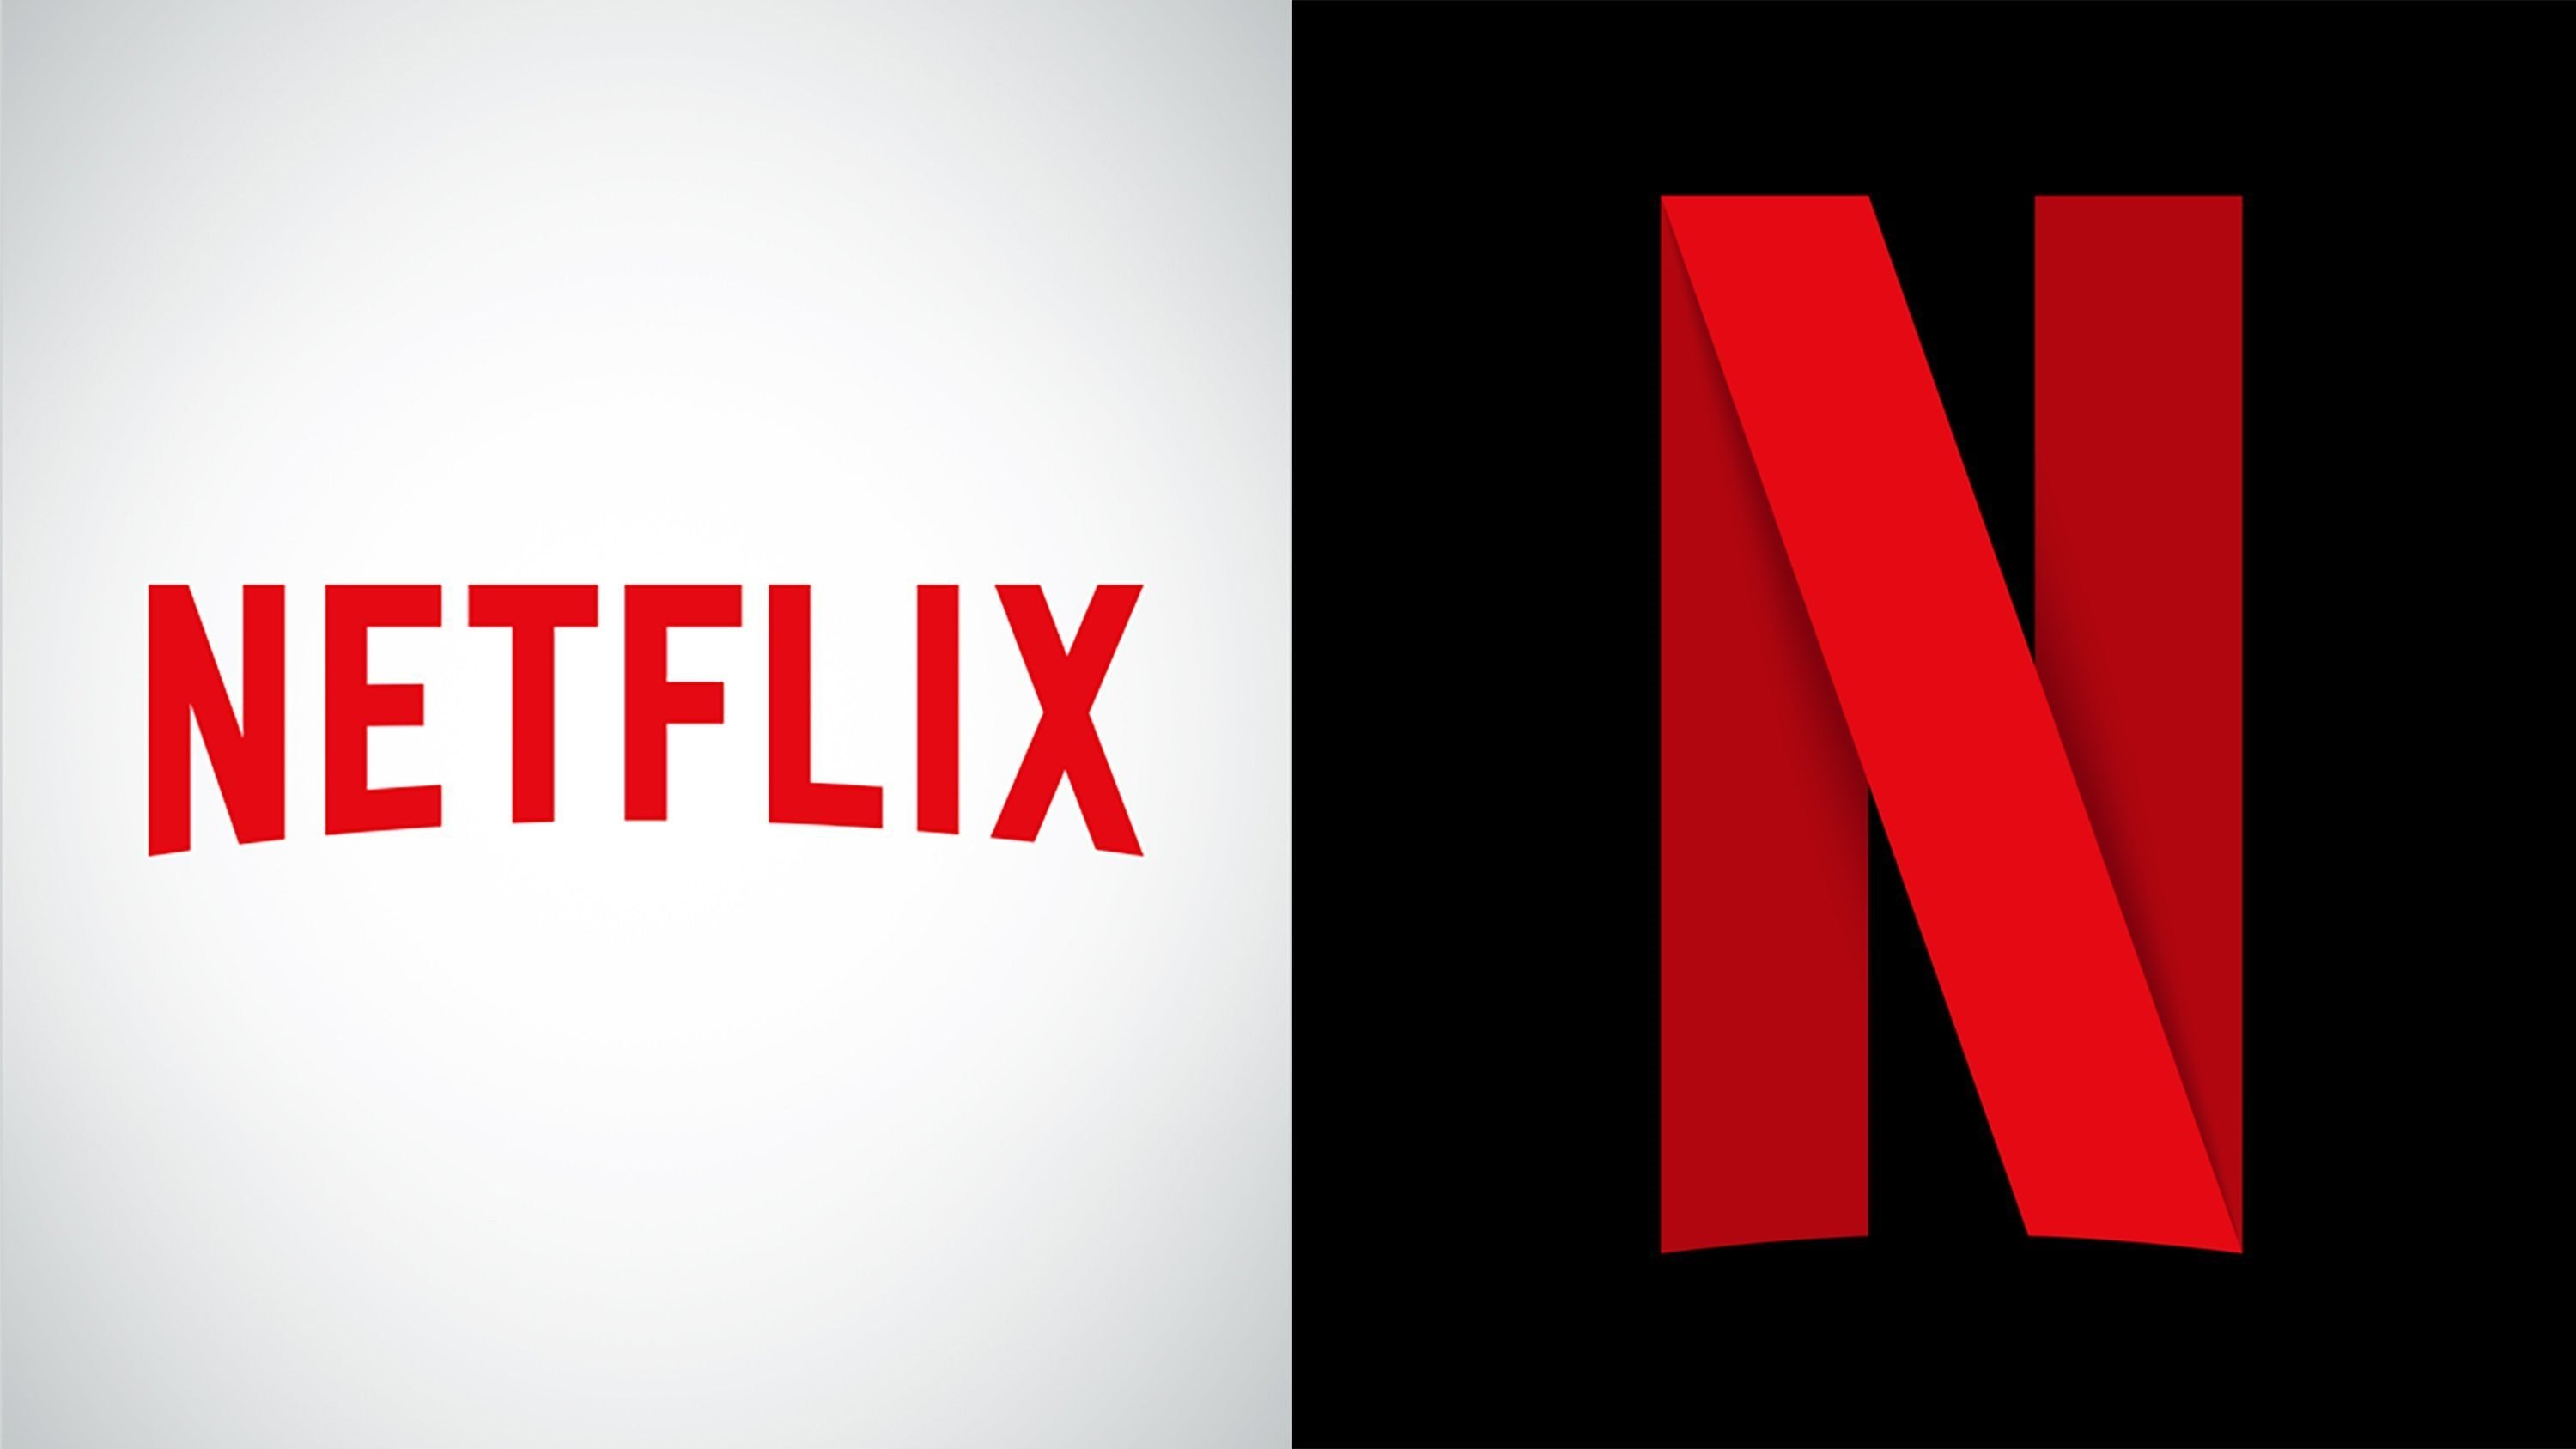 Exhausted of sitting through show intros? Netflix has the solution